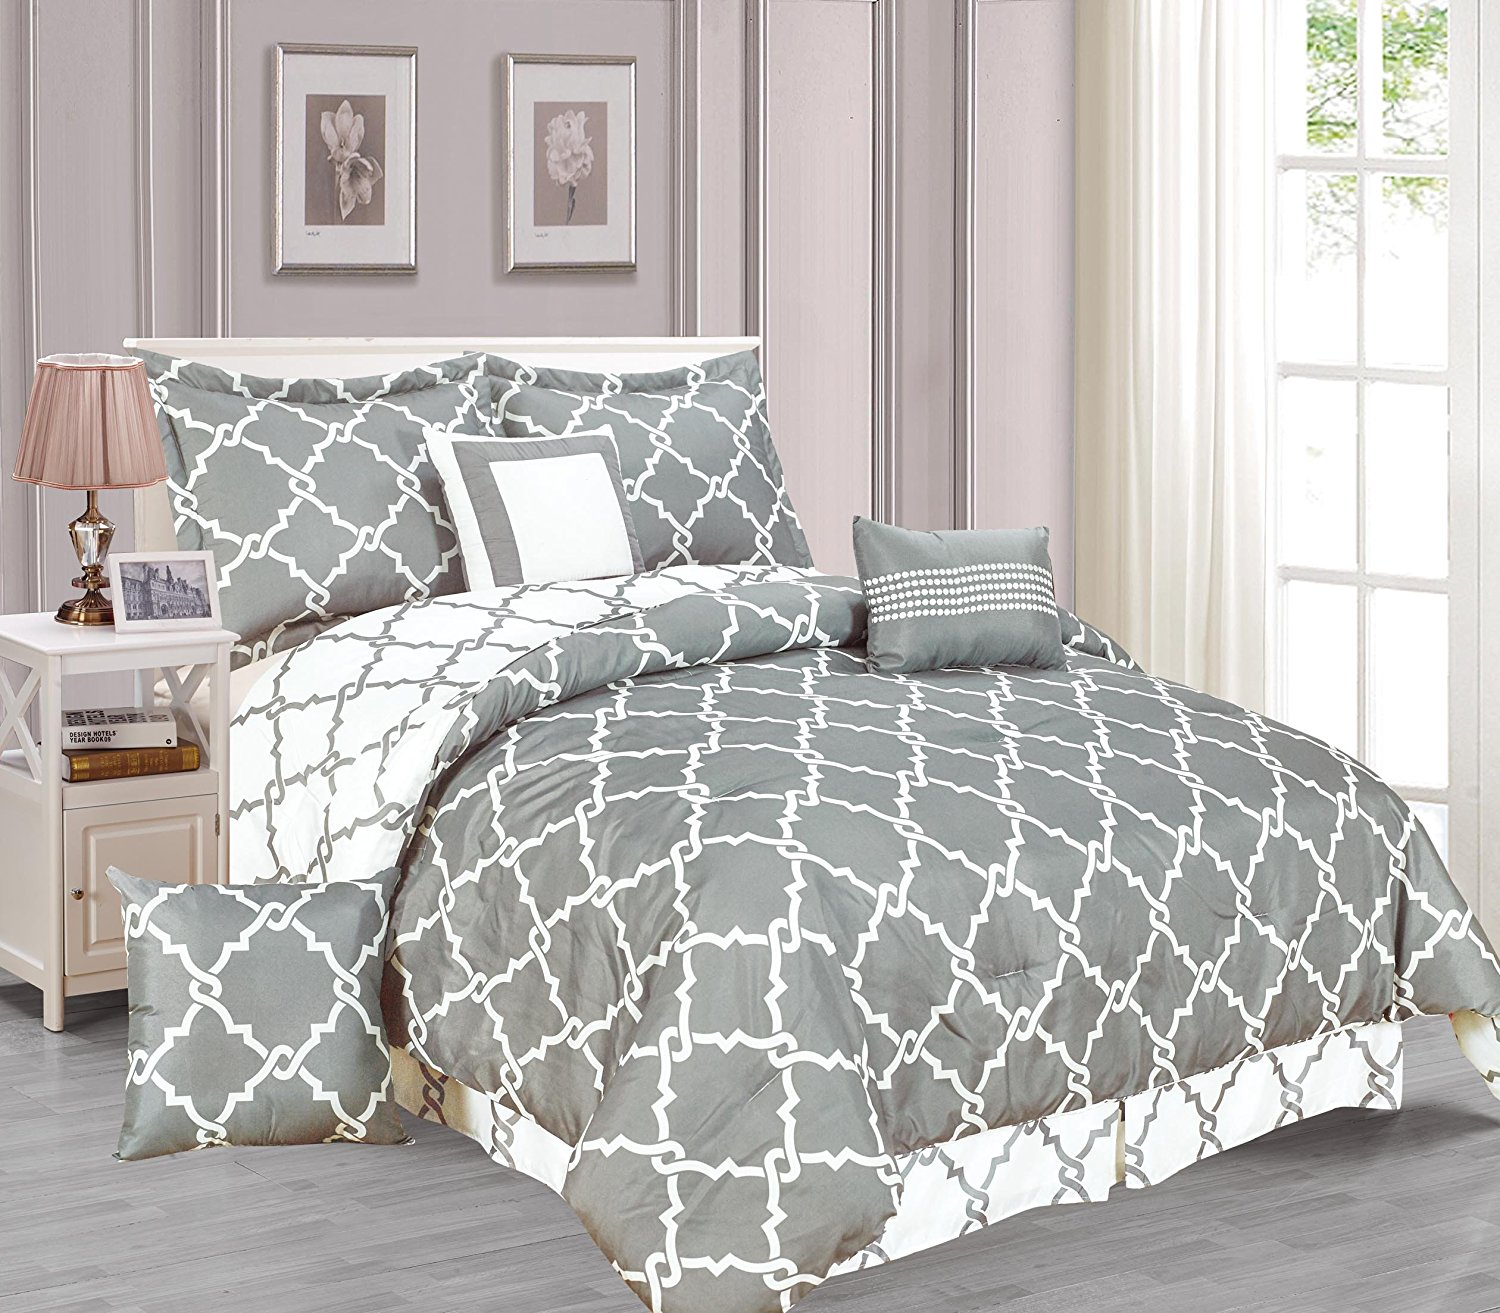 galaxy 7piece comforter set reversible soft oversized bedding gray california king size